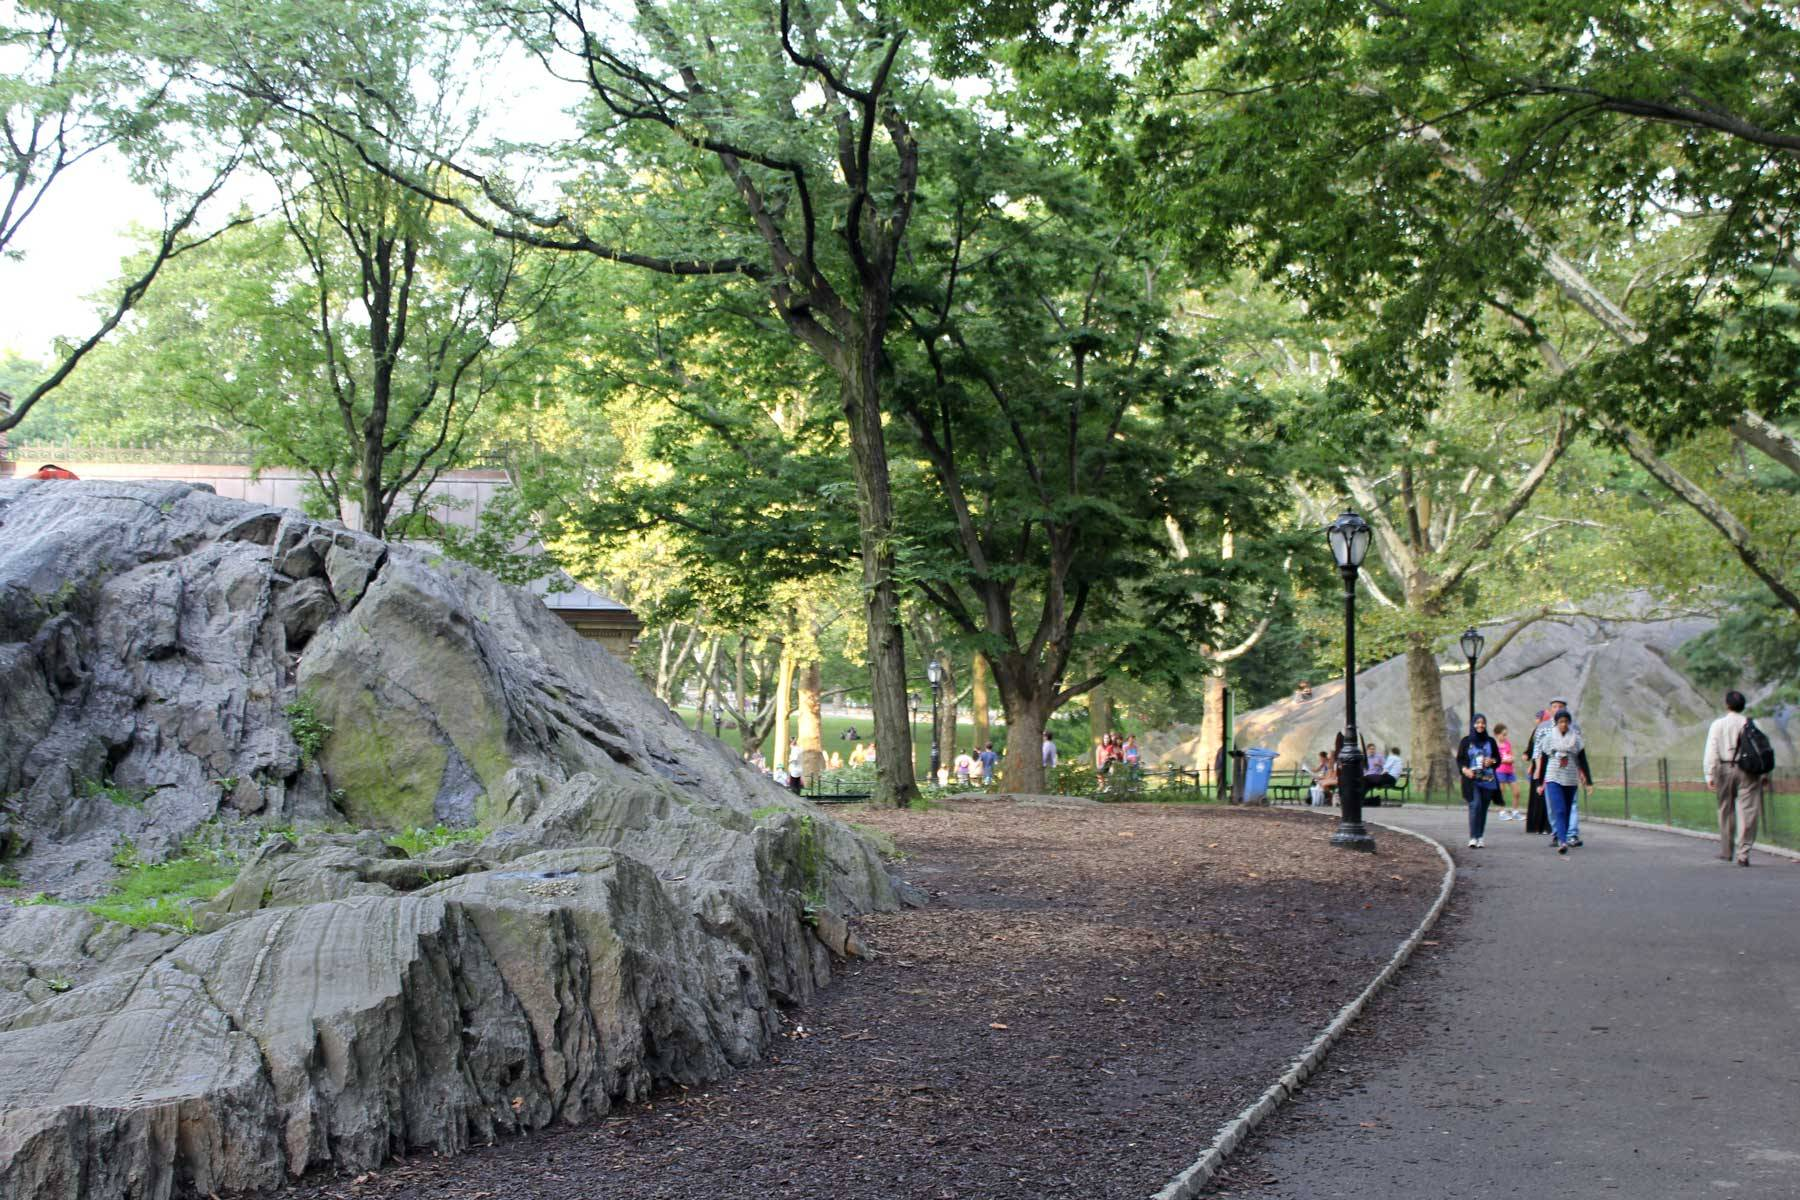 Curving path in Central Park